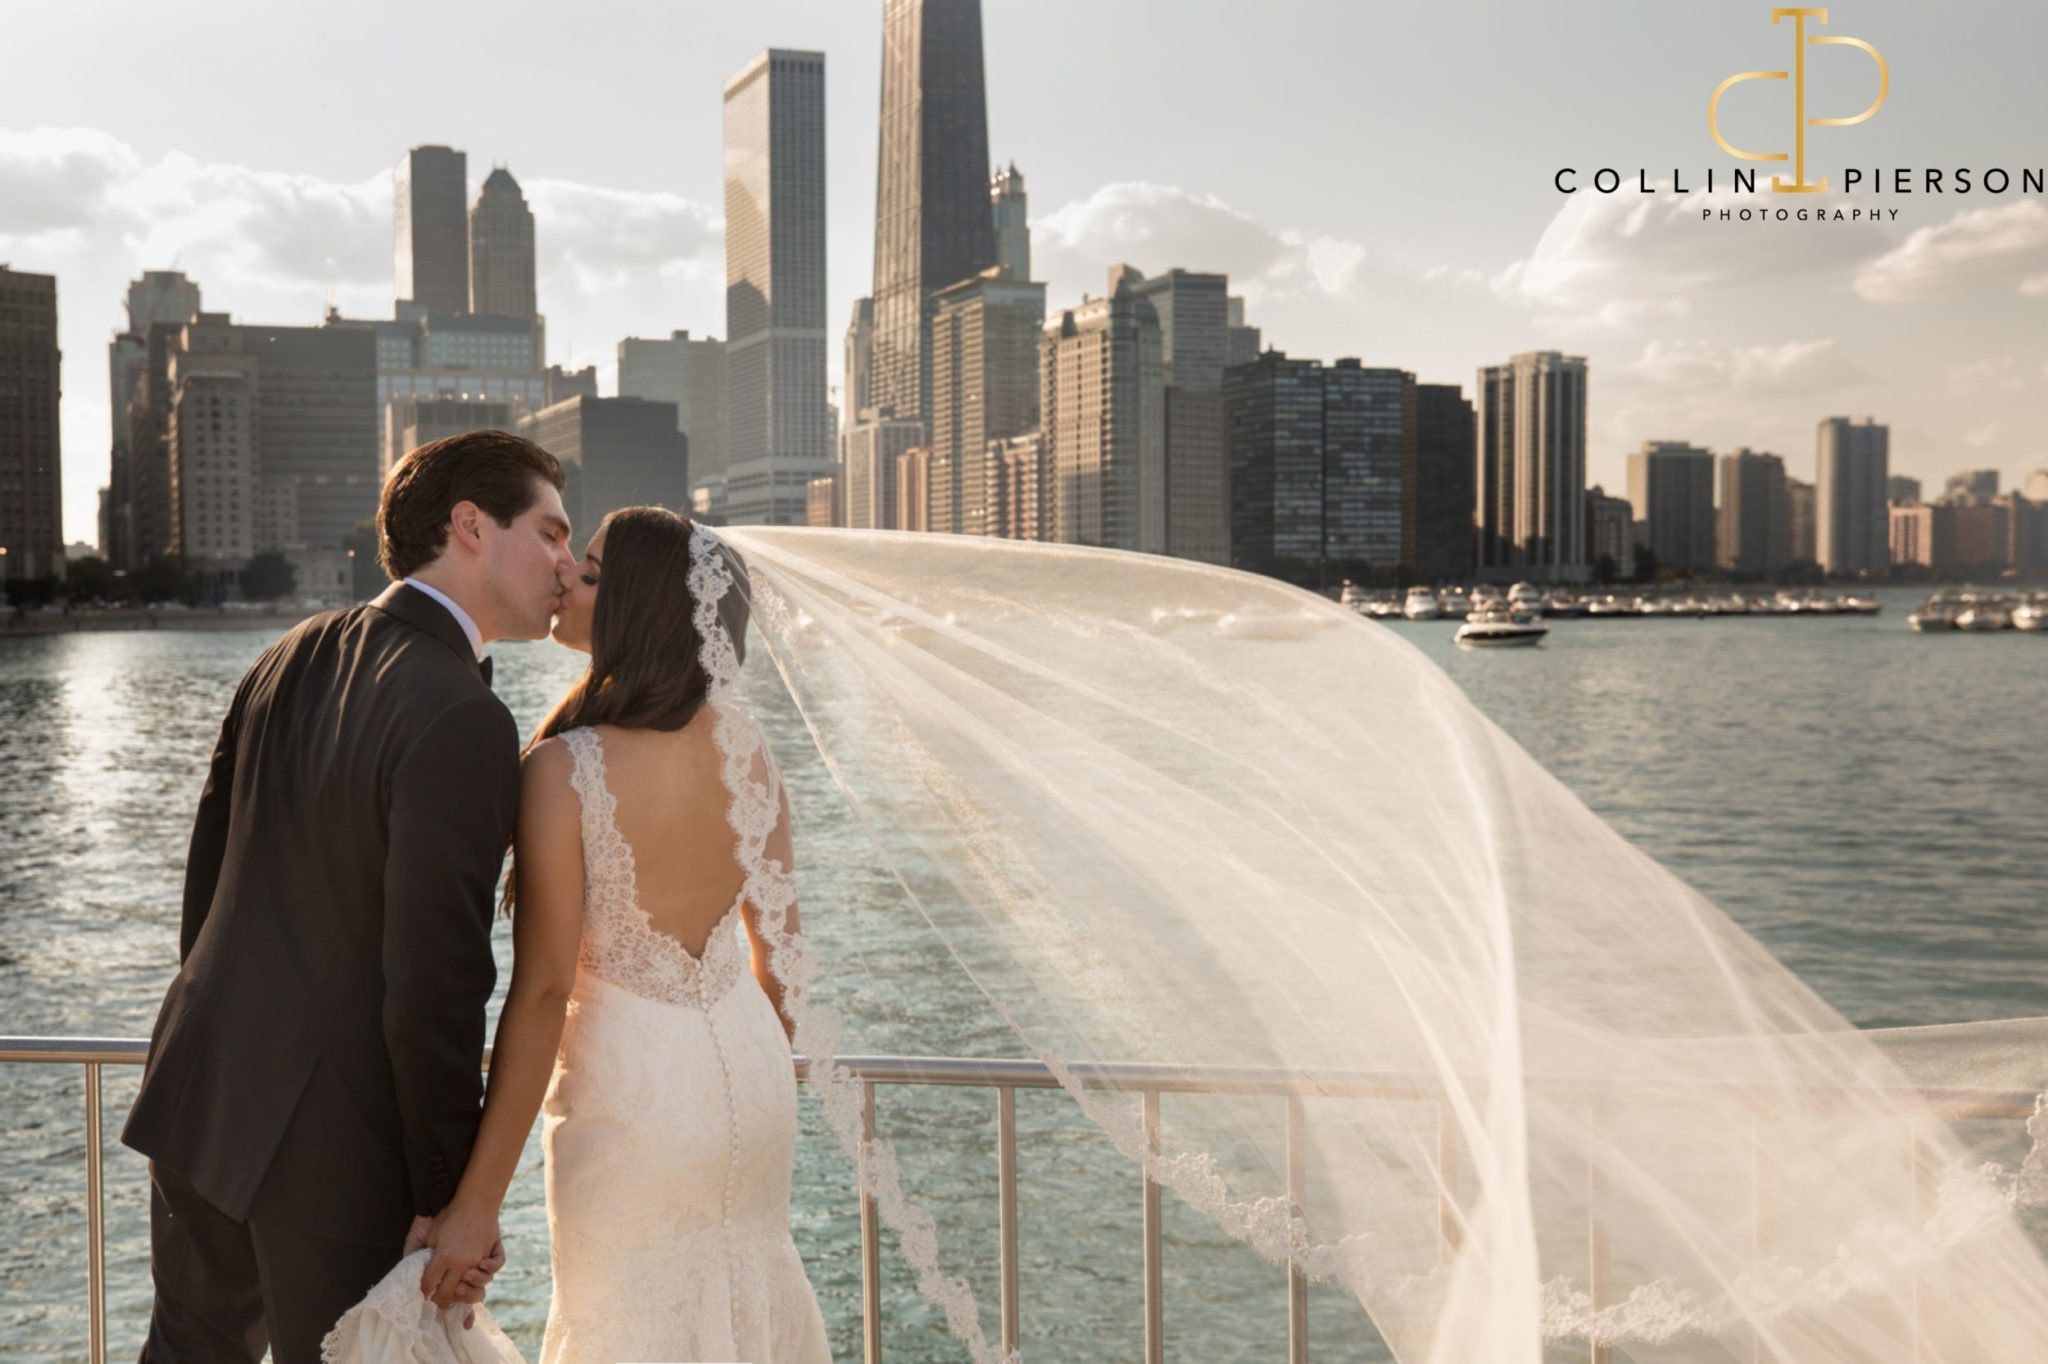 Julie + Ryan: A Knickerbocker Hotel Chicago Wedding